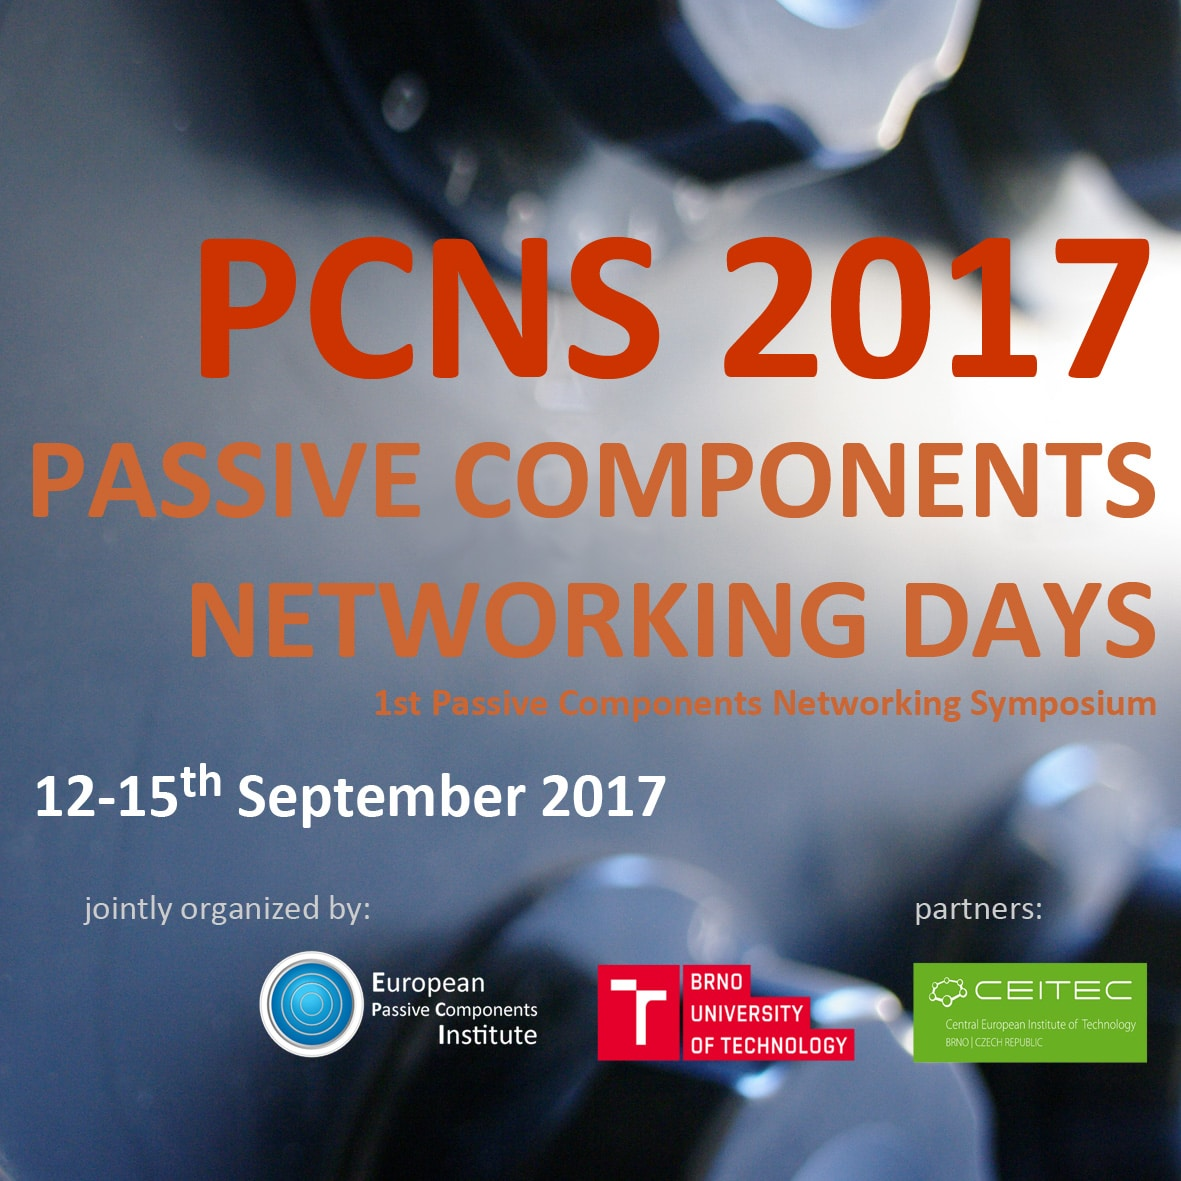 PCNS Passive Components Symposium Days Call for Papers